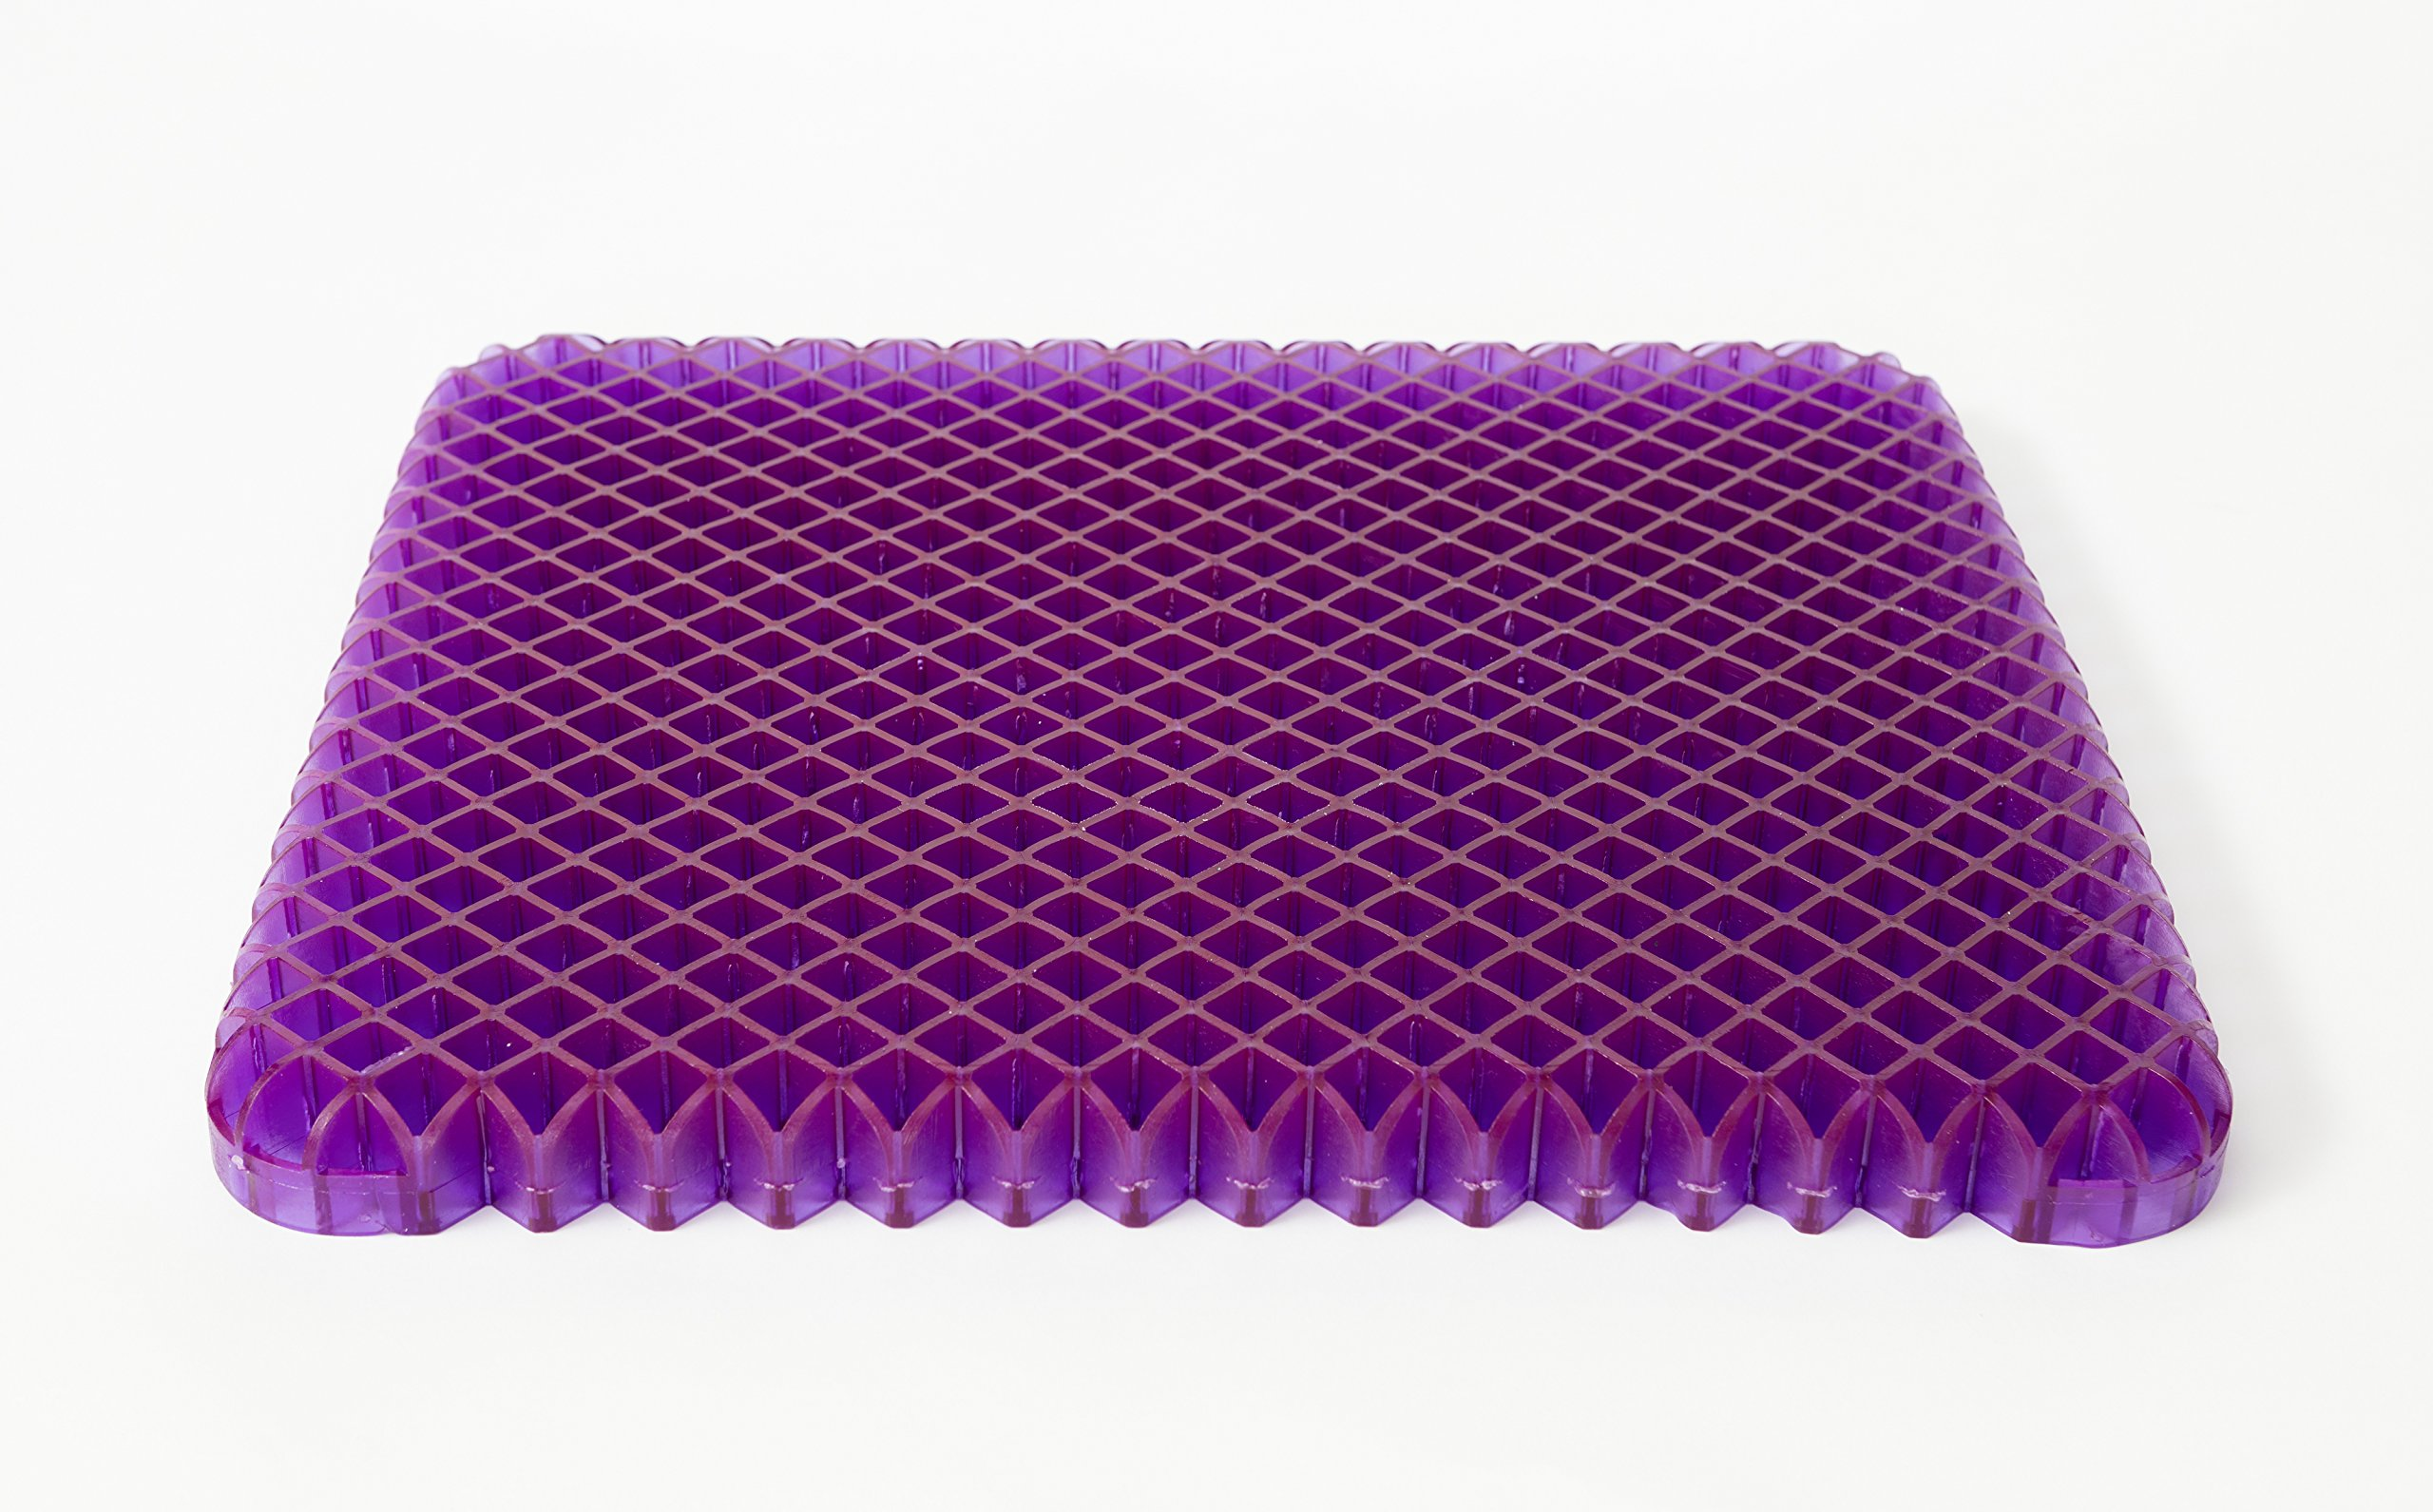 Purple Seat Cushion Simply - Seat Cushion For The Car Or Office Chair - Can Help In Relieving Back Pain & Sciatica Pain